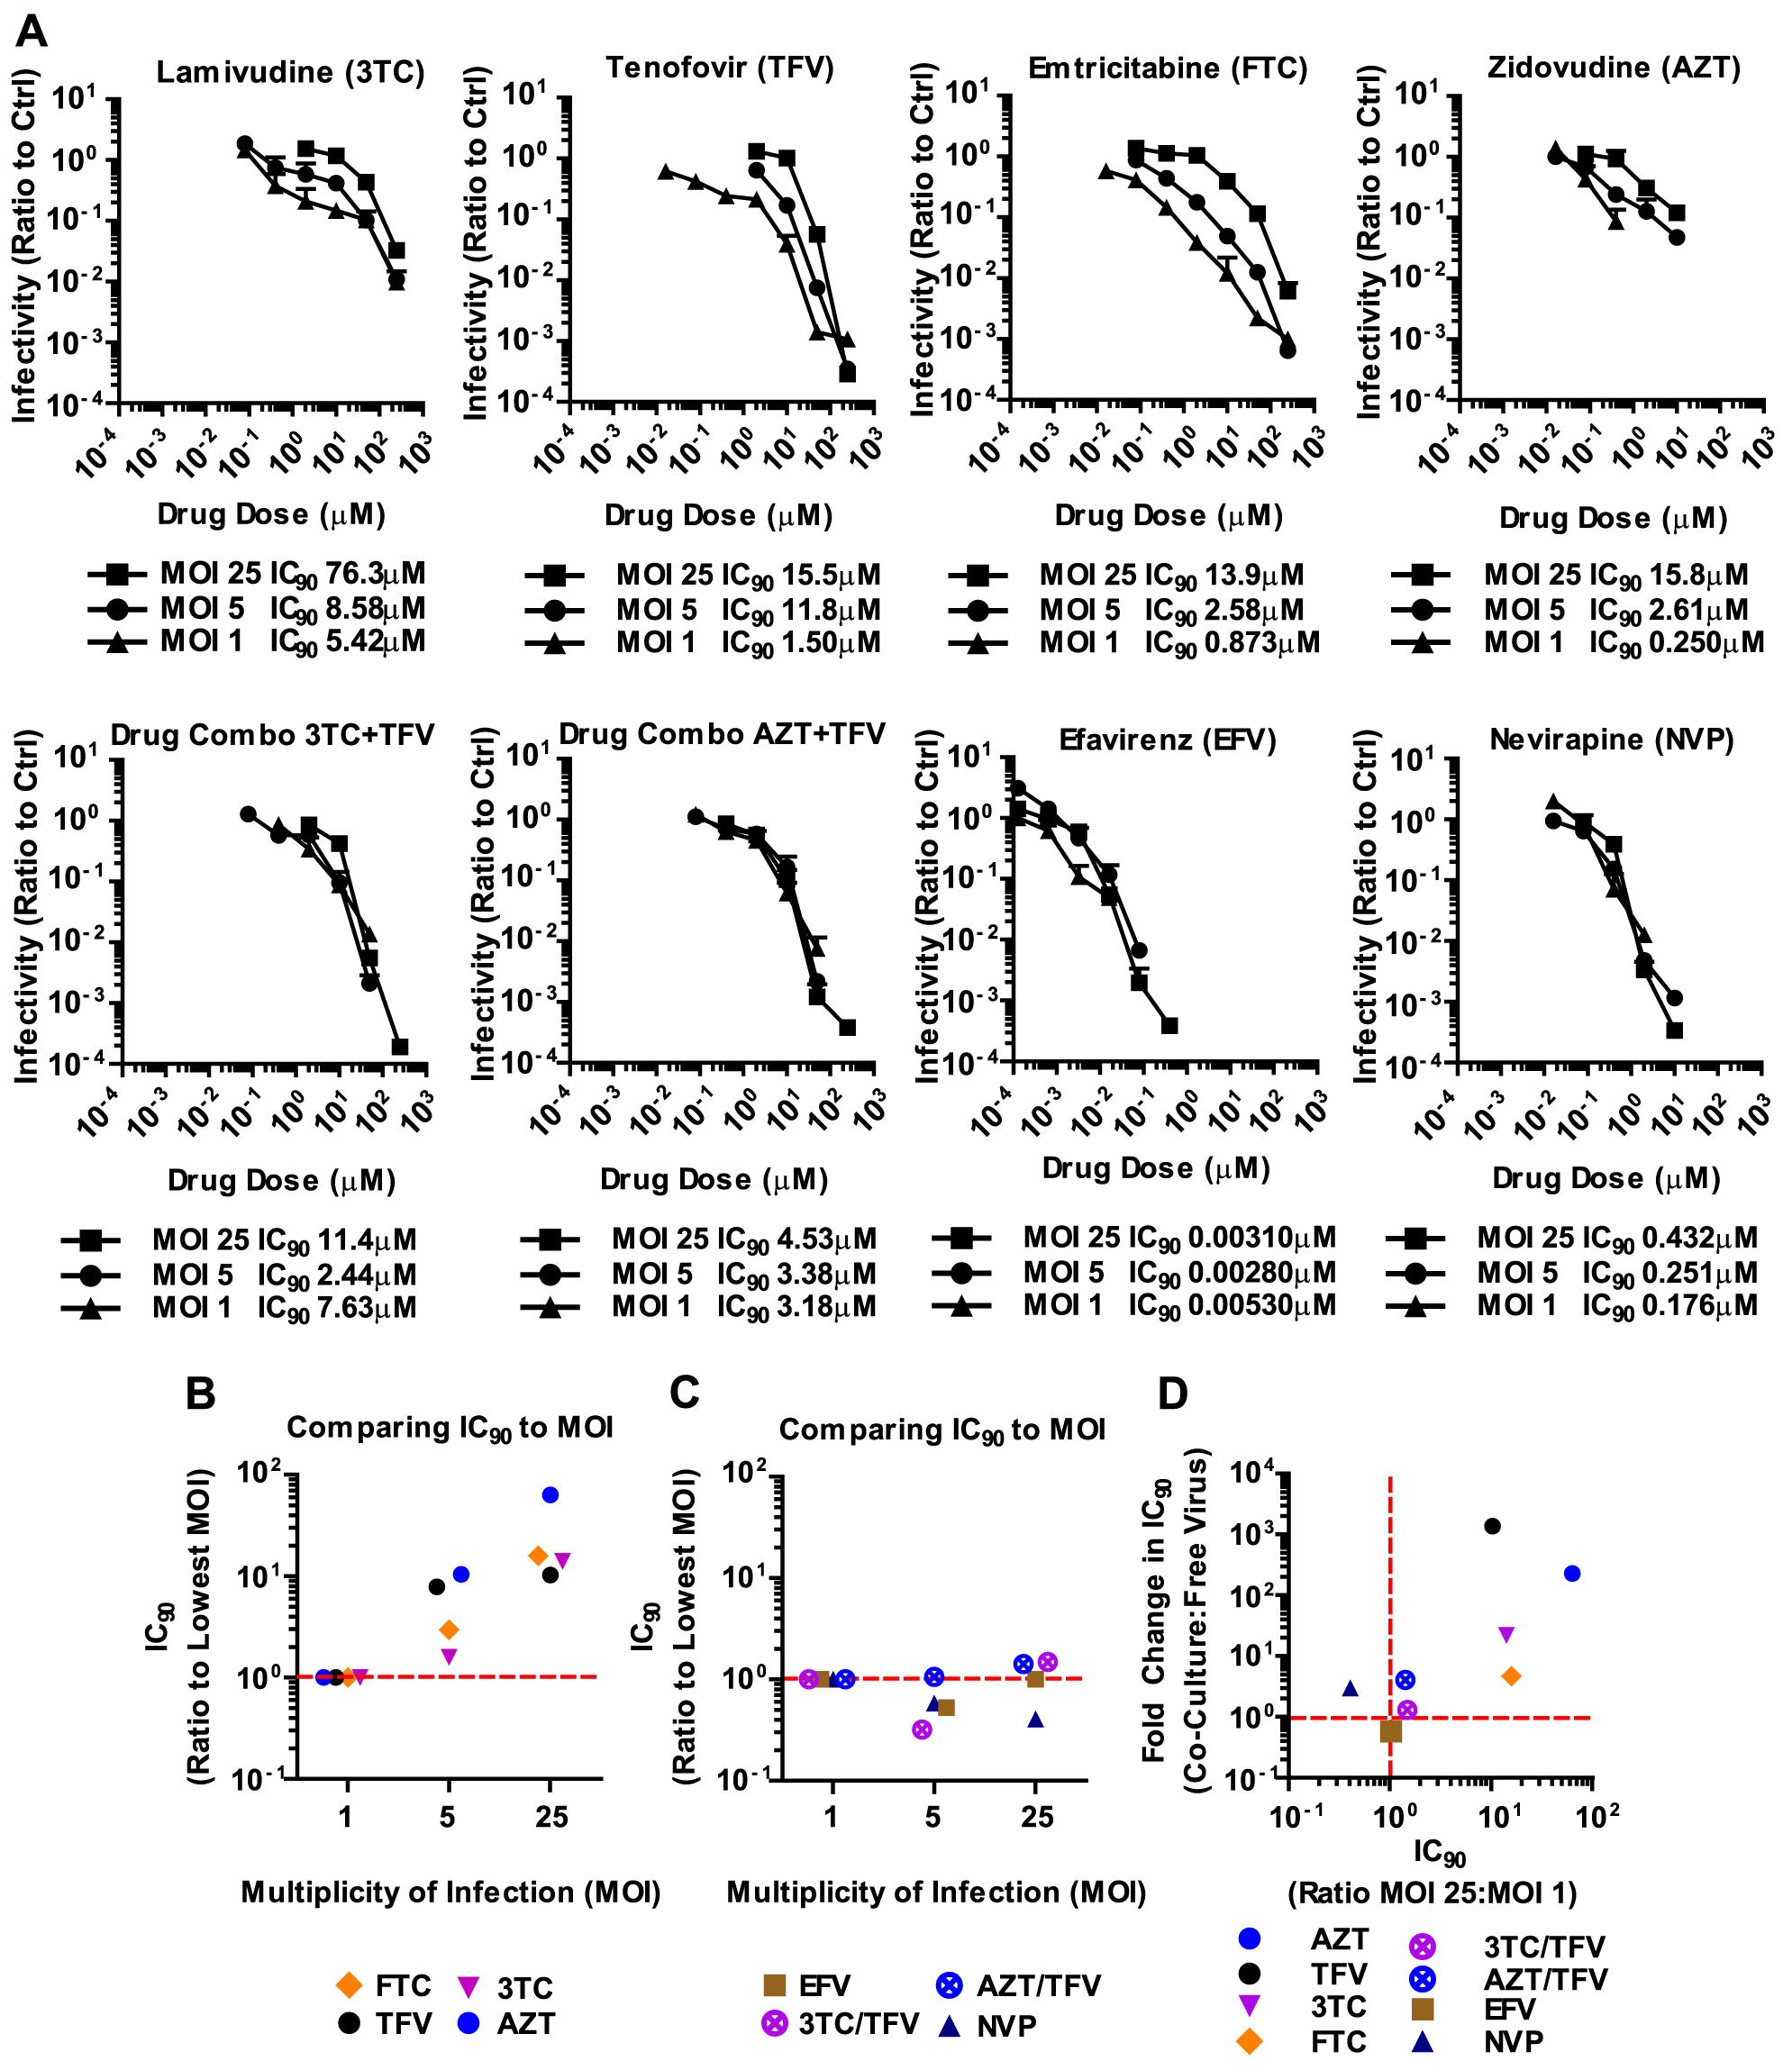 Antiretroviral inhibitors and combinations that are effective against HIV-1 cell-to-cell transmission are effective against high viral MOI.